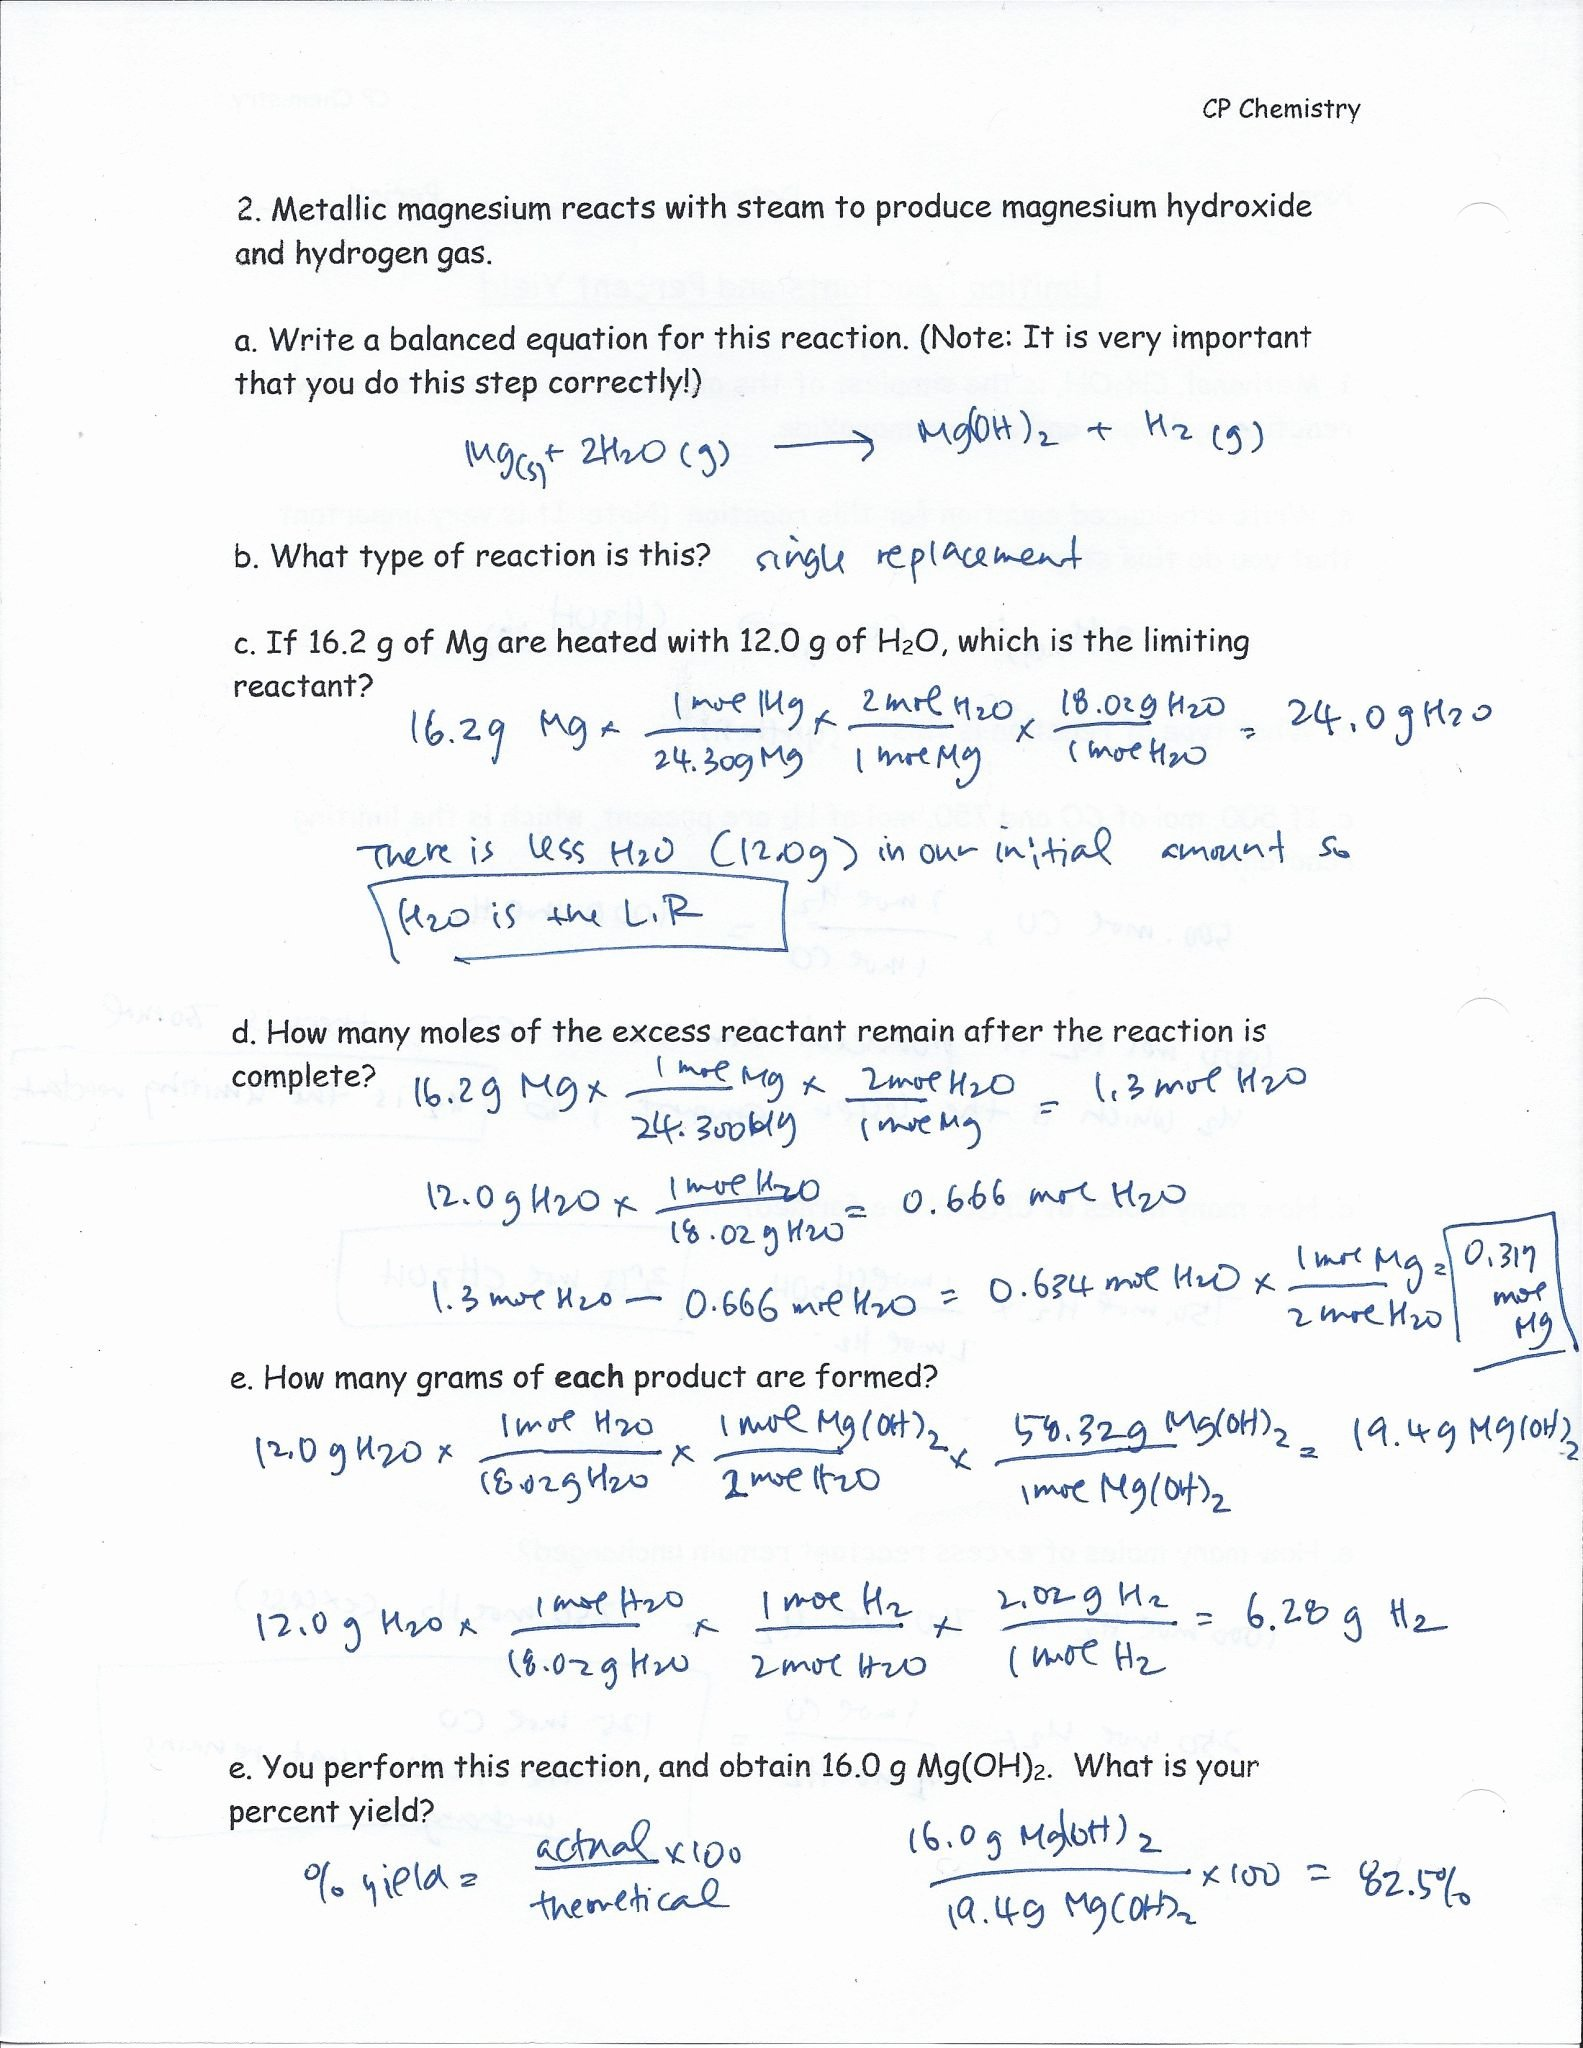 Literal Equations Worksheet Answer Awesome Literal Equations Worksheet 1 Answer Key